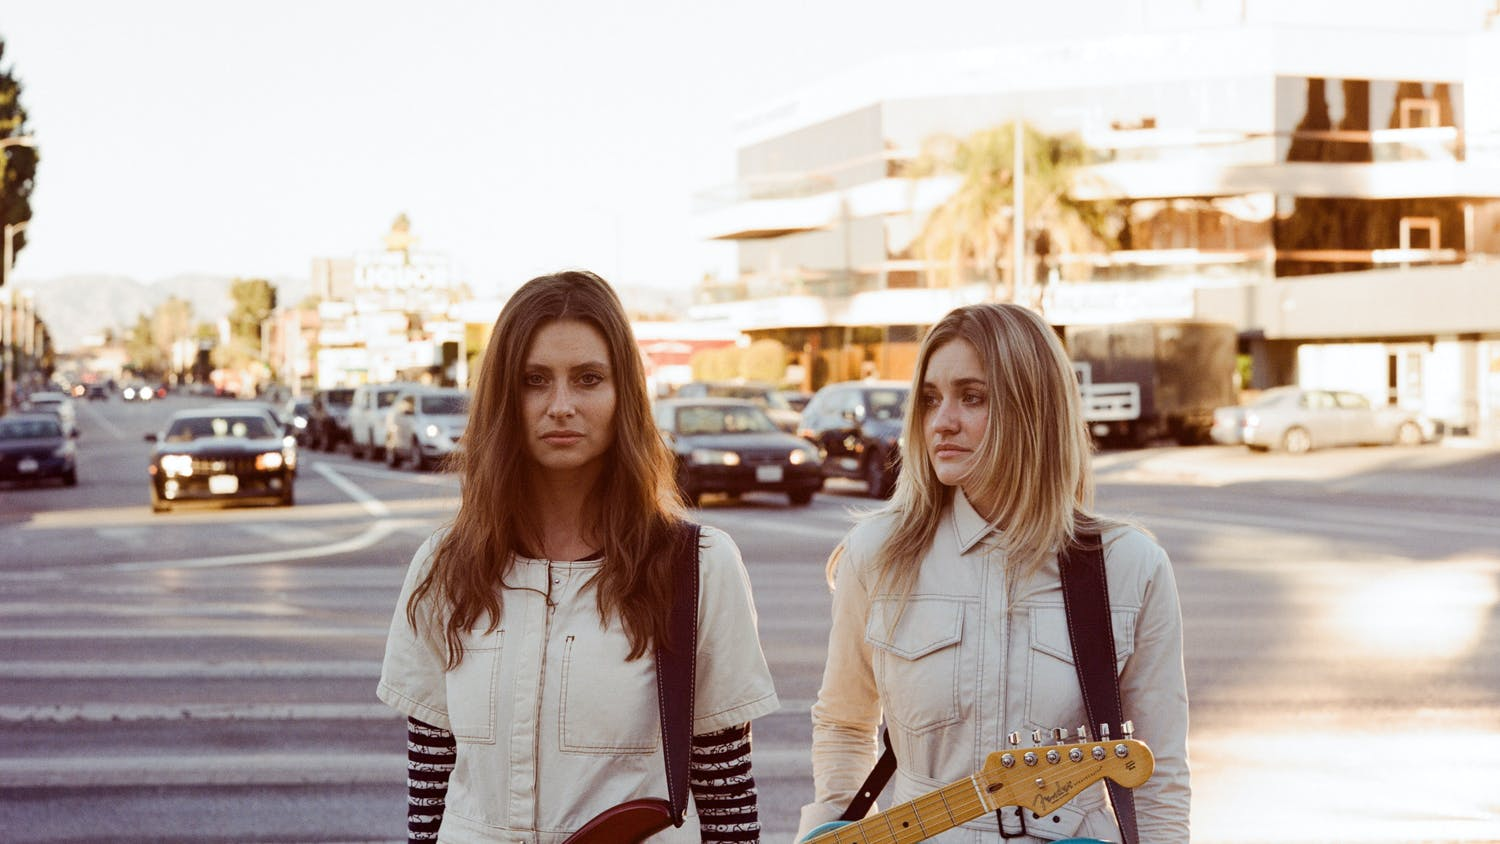 """Listen!!!"" will be featured on Aly & AJ's upcoming album, to be released in spring."